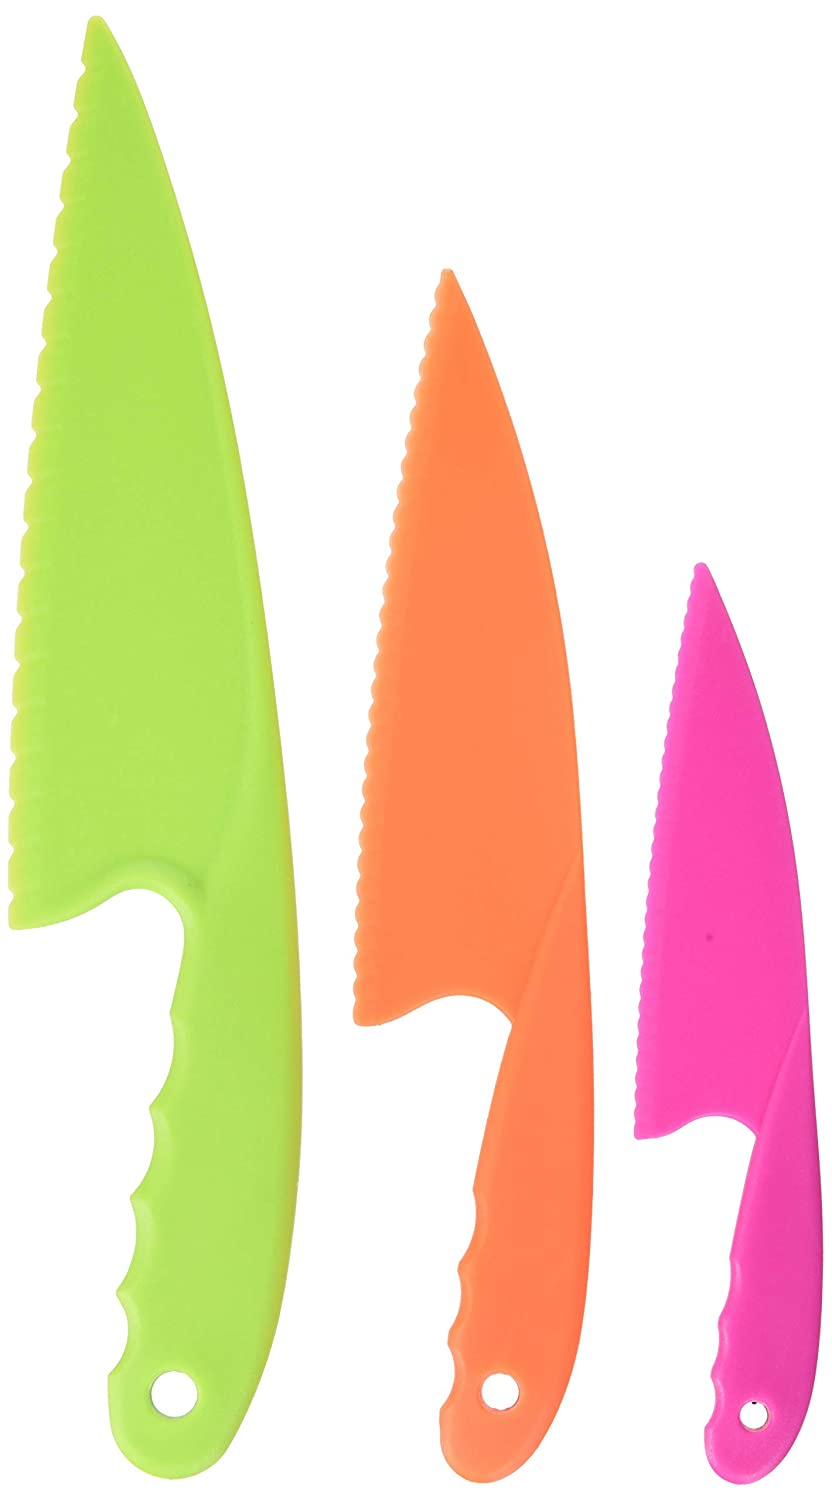 Plastic Kitchen Knife Set 3 Pieces and 3 colors for Kids, Safe Nylon Cooking Knives for Children, for Lettuce or Salads by GarMills